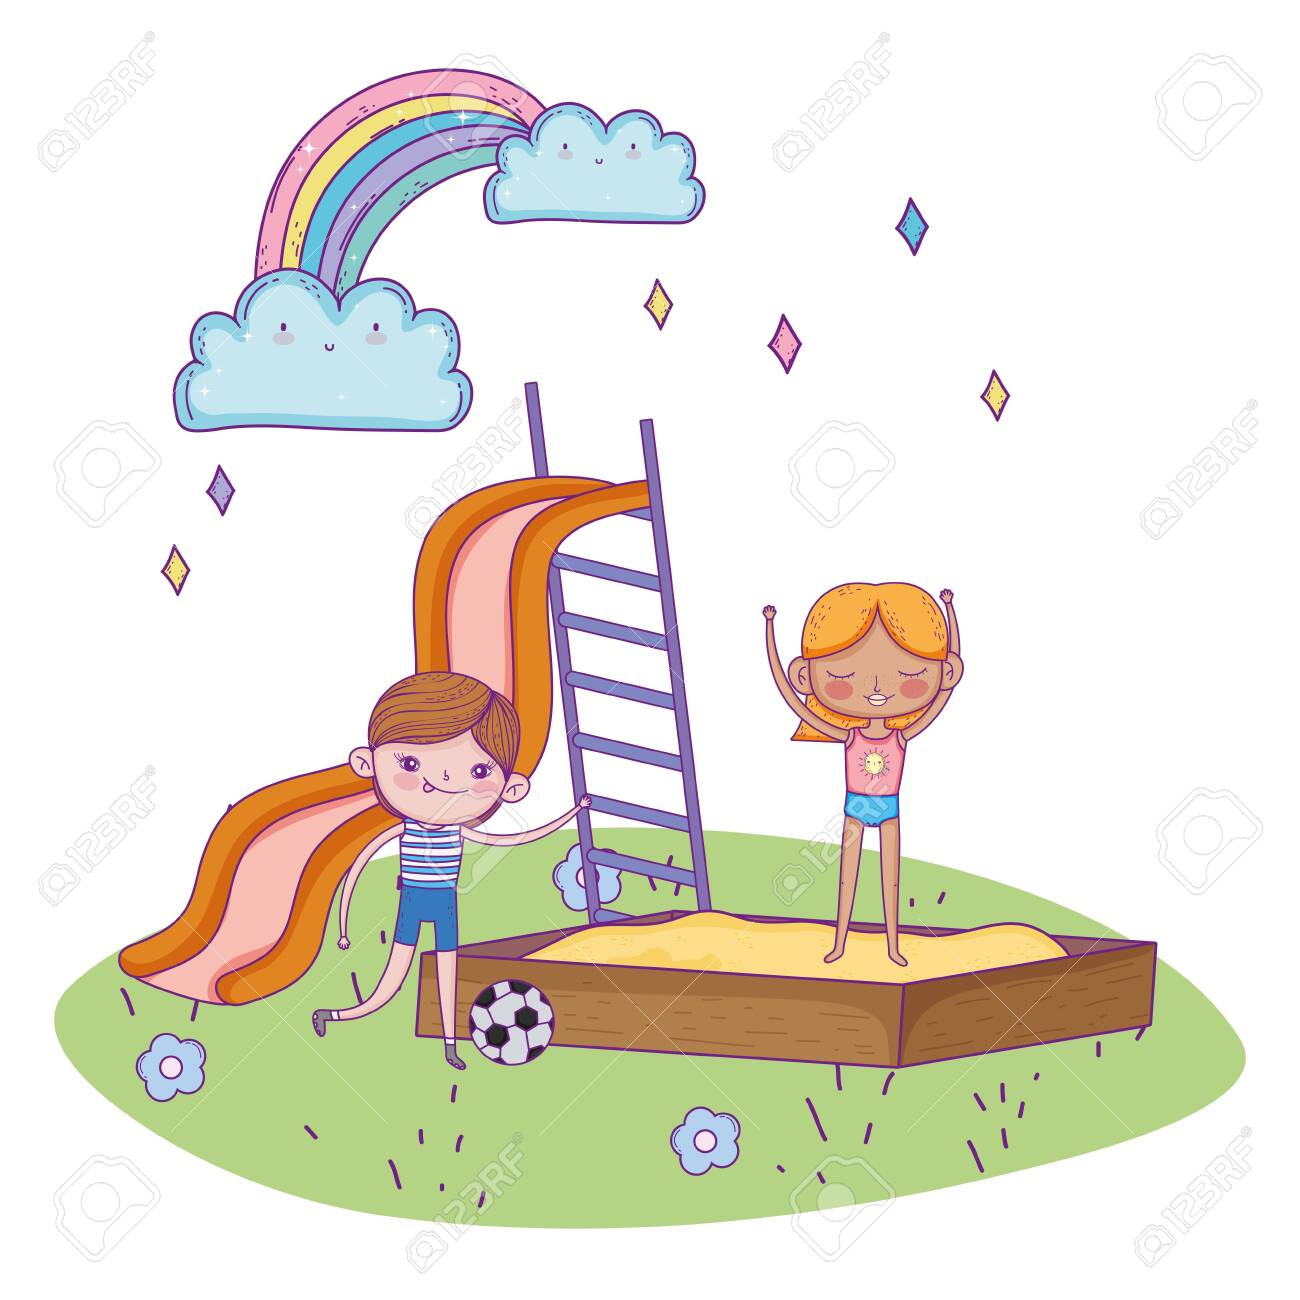 happy childrens day, boy with soccer ball and girl in sandbox playground vector illustration - 140015489